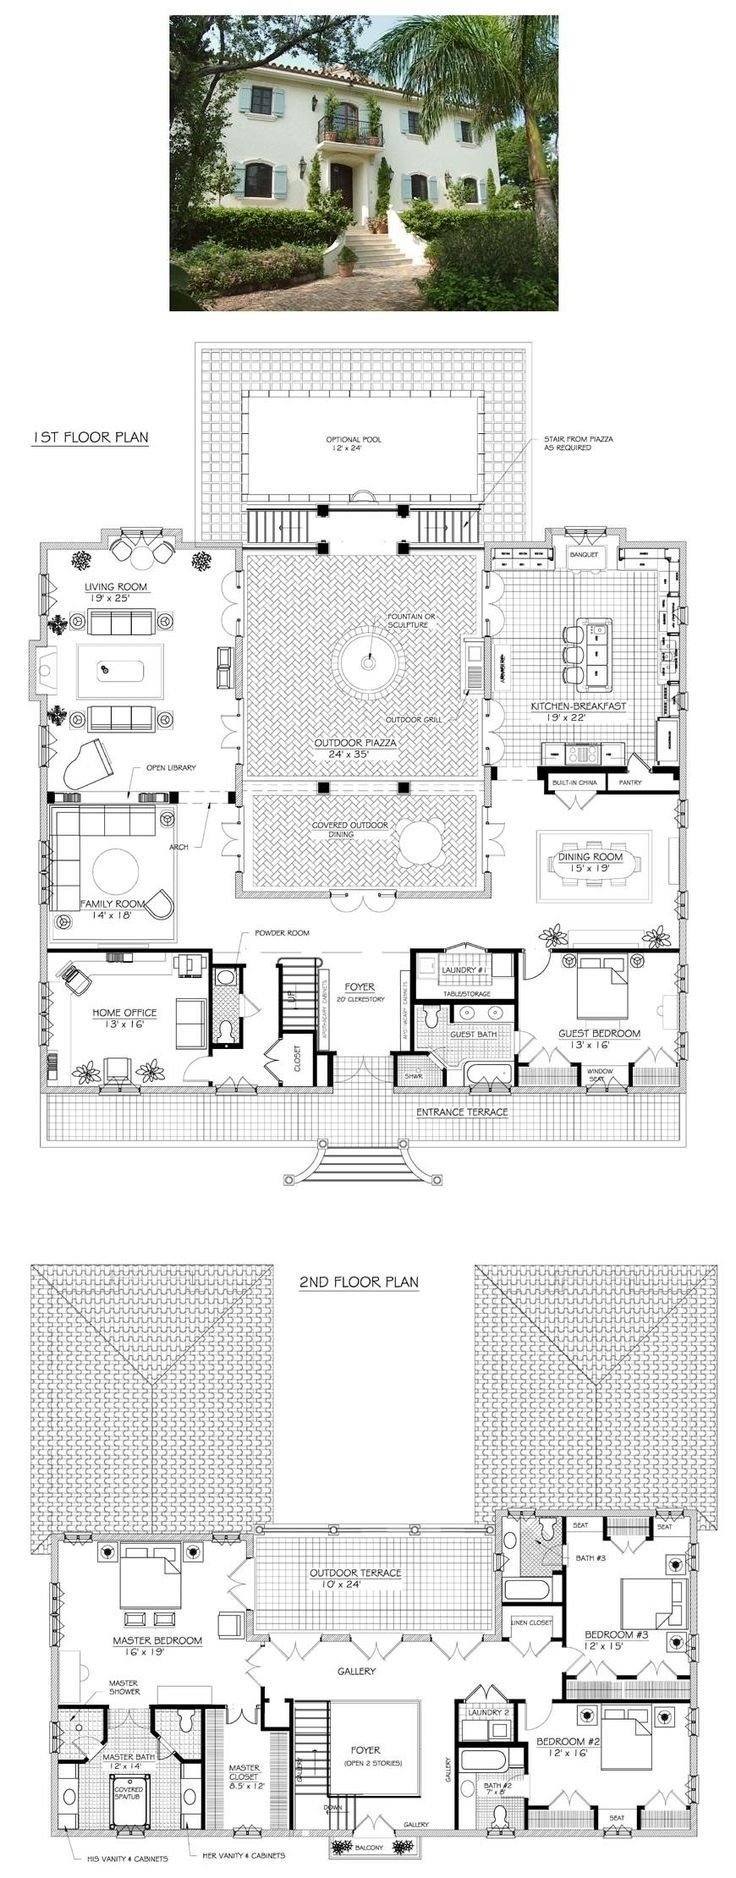 Gorgeous french villa plan i fell in love with this plan its my new